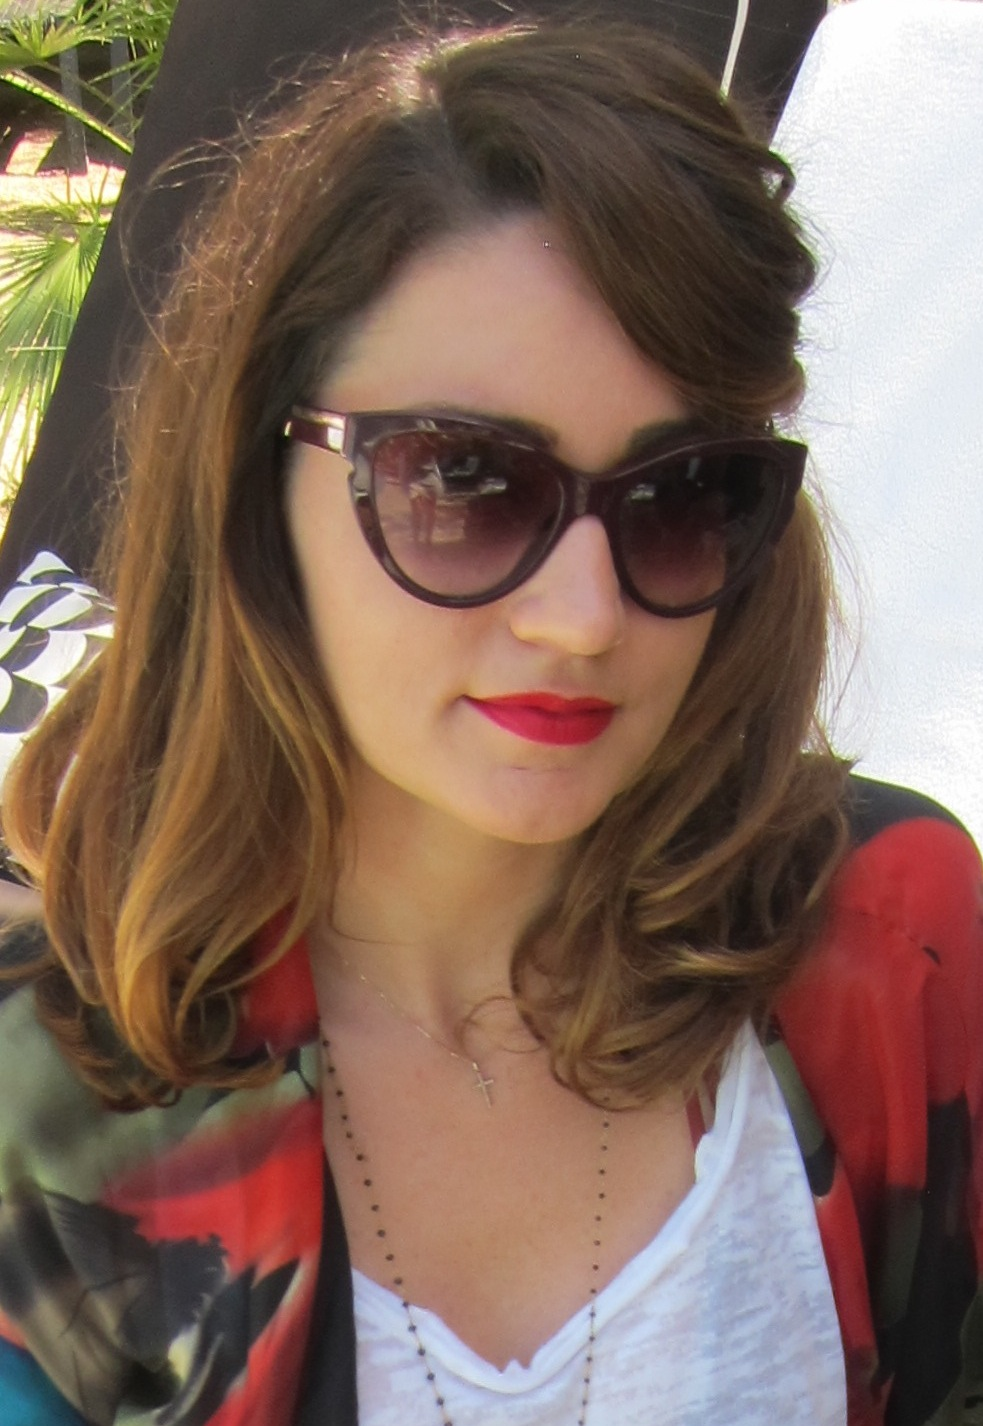 A pop of red across the lips was the cornerstone to this modern-vintage look. Photo: Meg Cuna